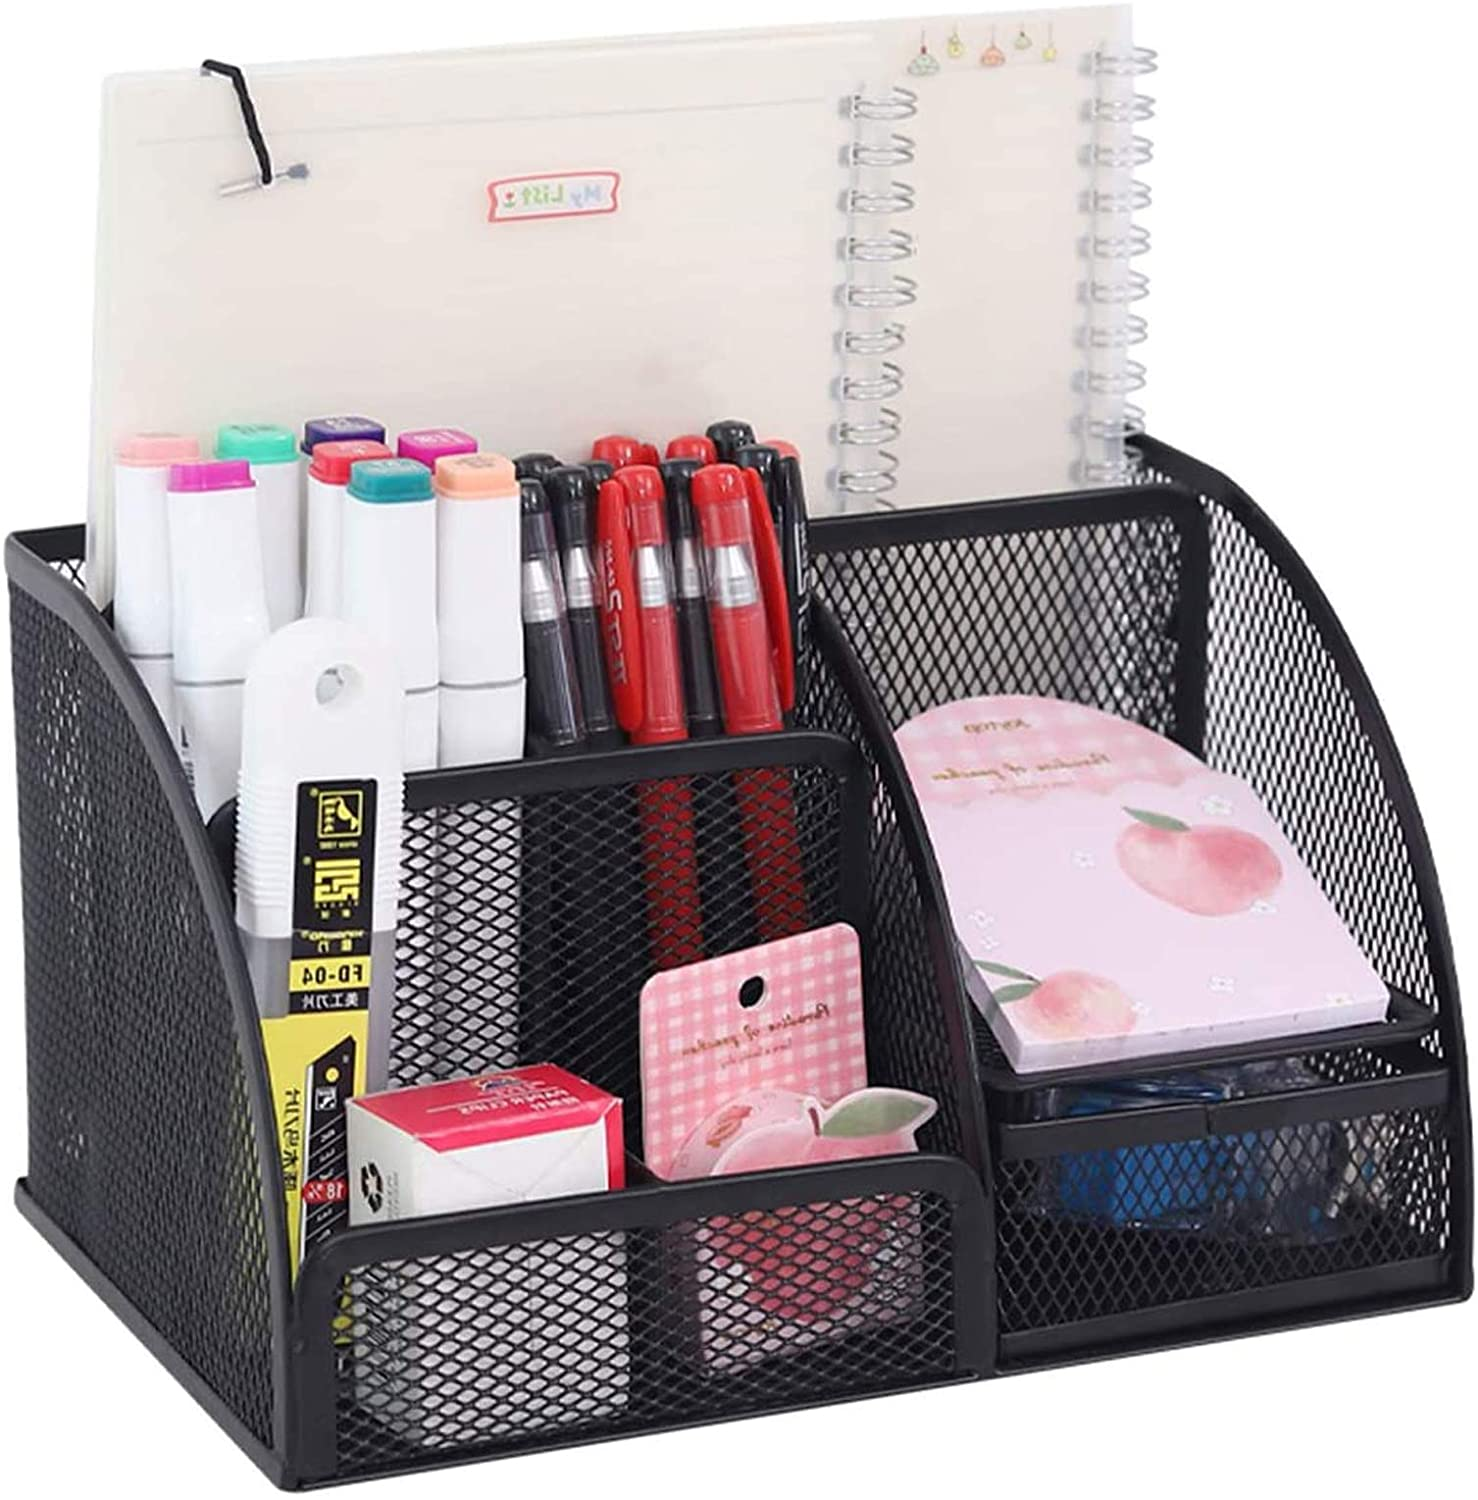 YCOCO Desk Organizer for Office,All in One Desktop Organizer with Note Paper Organizer and Pencil Holder,Black Metal Mesh Office Organizer for Office Supply and Desk Accessories Organizers : Office Products